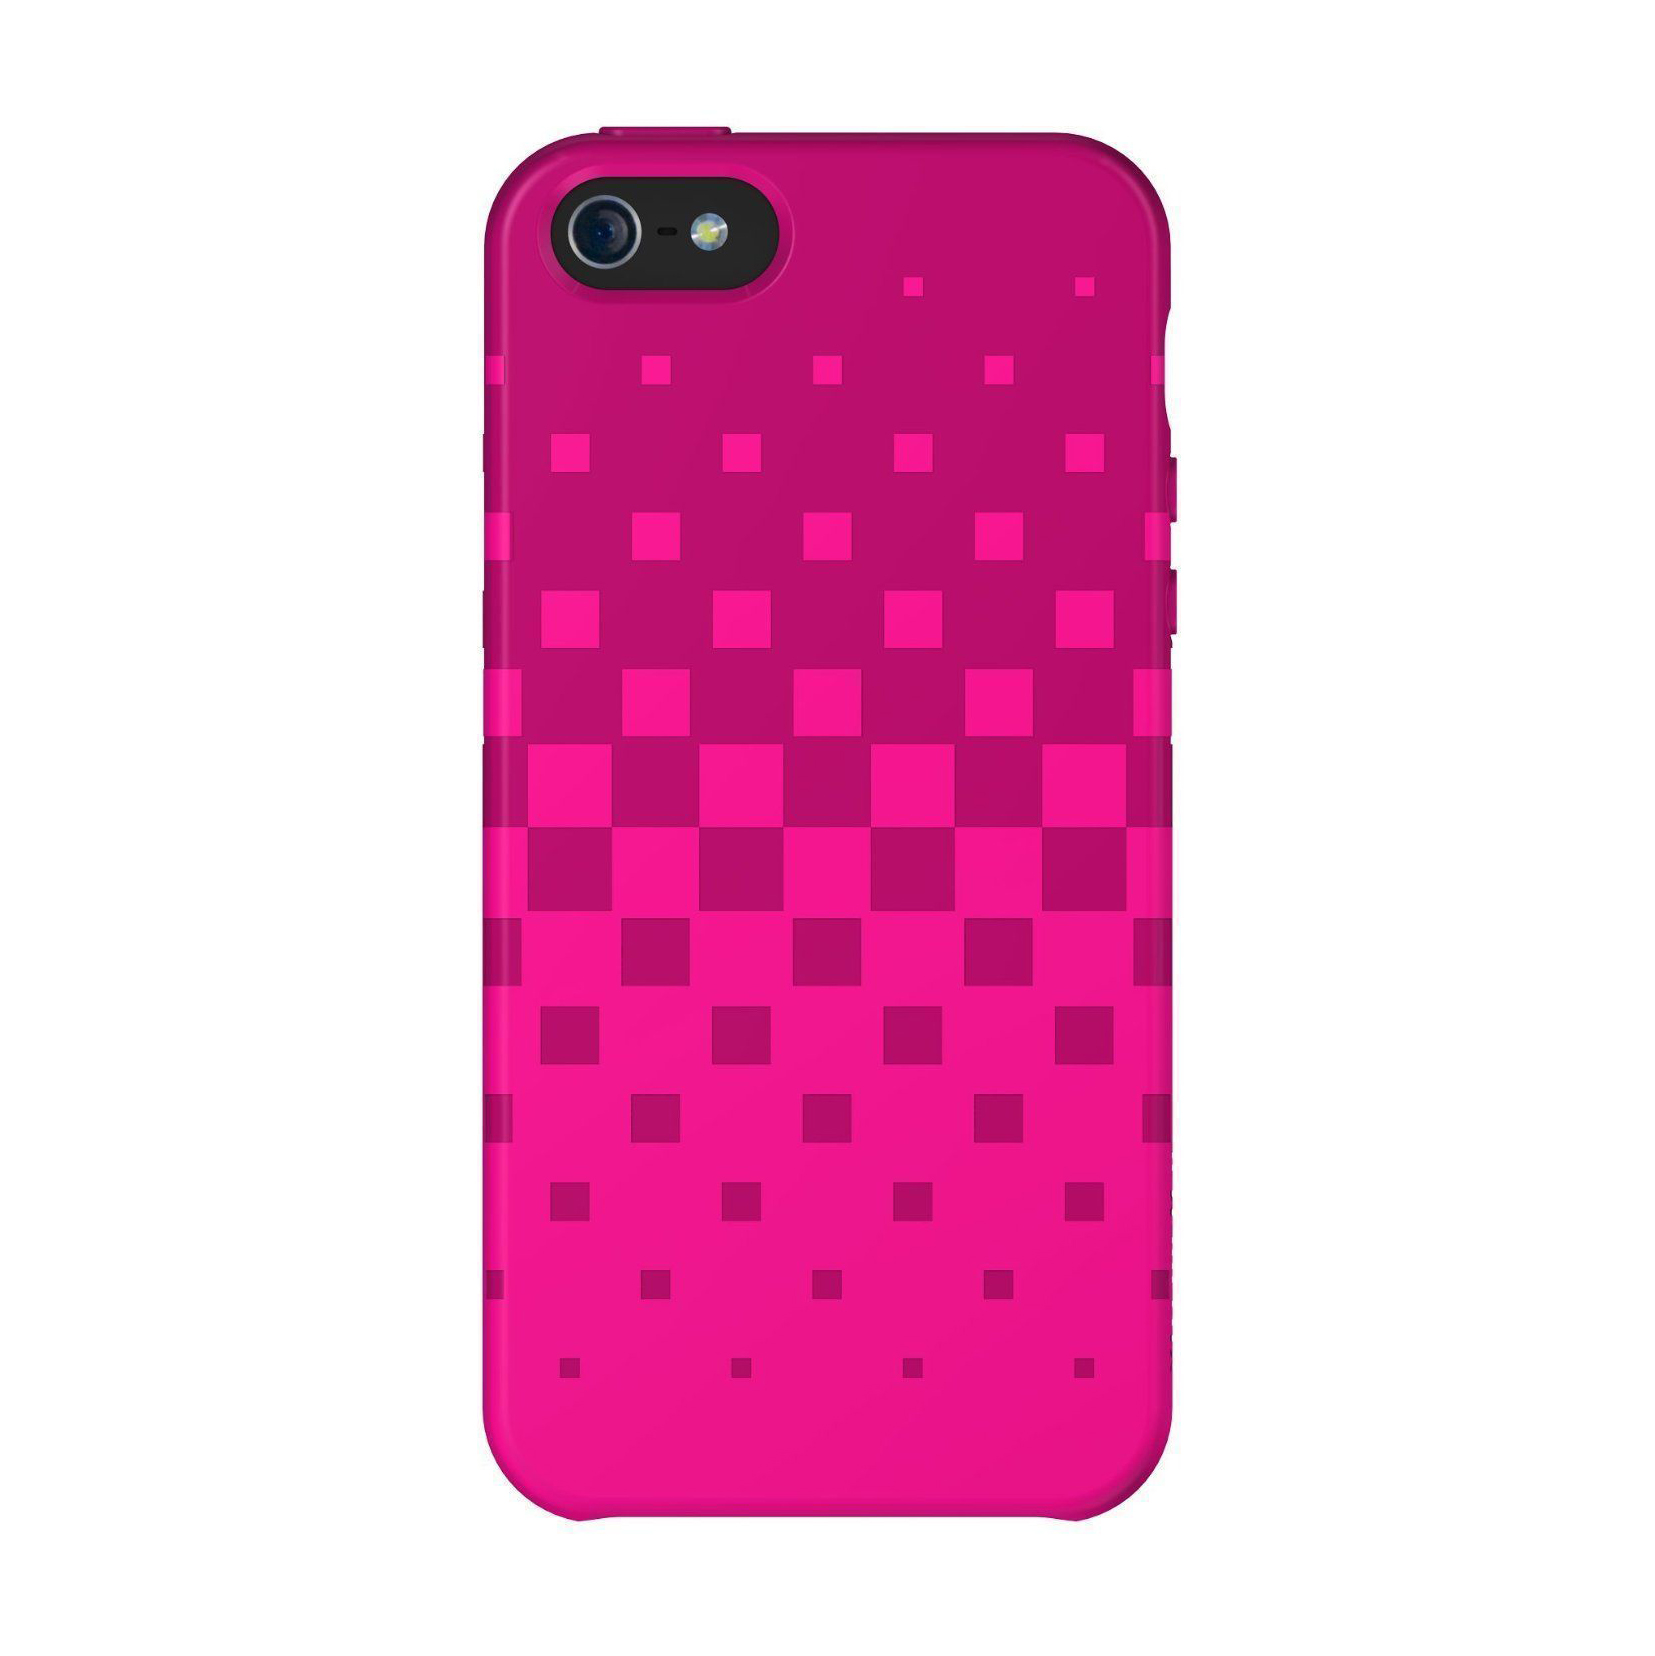 XtremeMac IPP Tuffwrap Case for iPhone 5 - Bubble Gum Pink